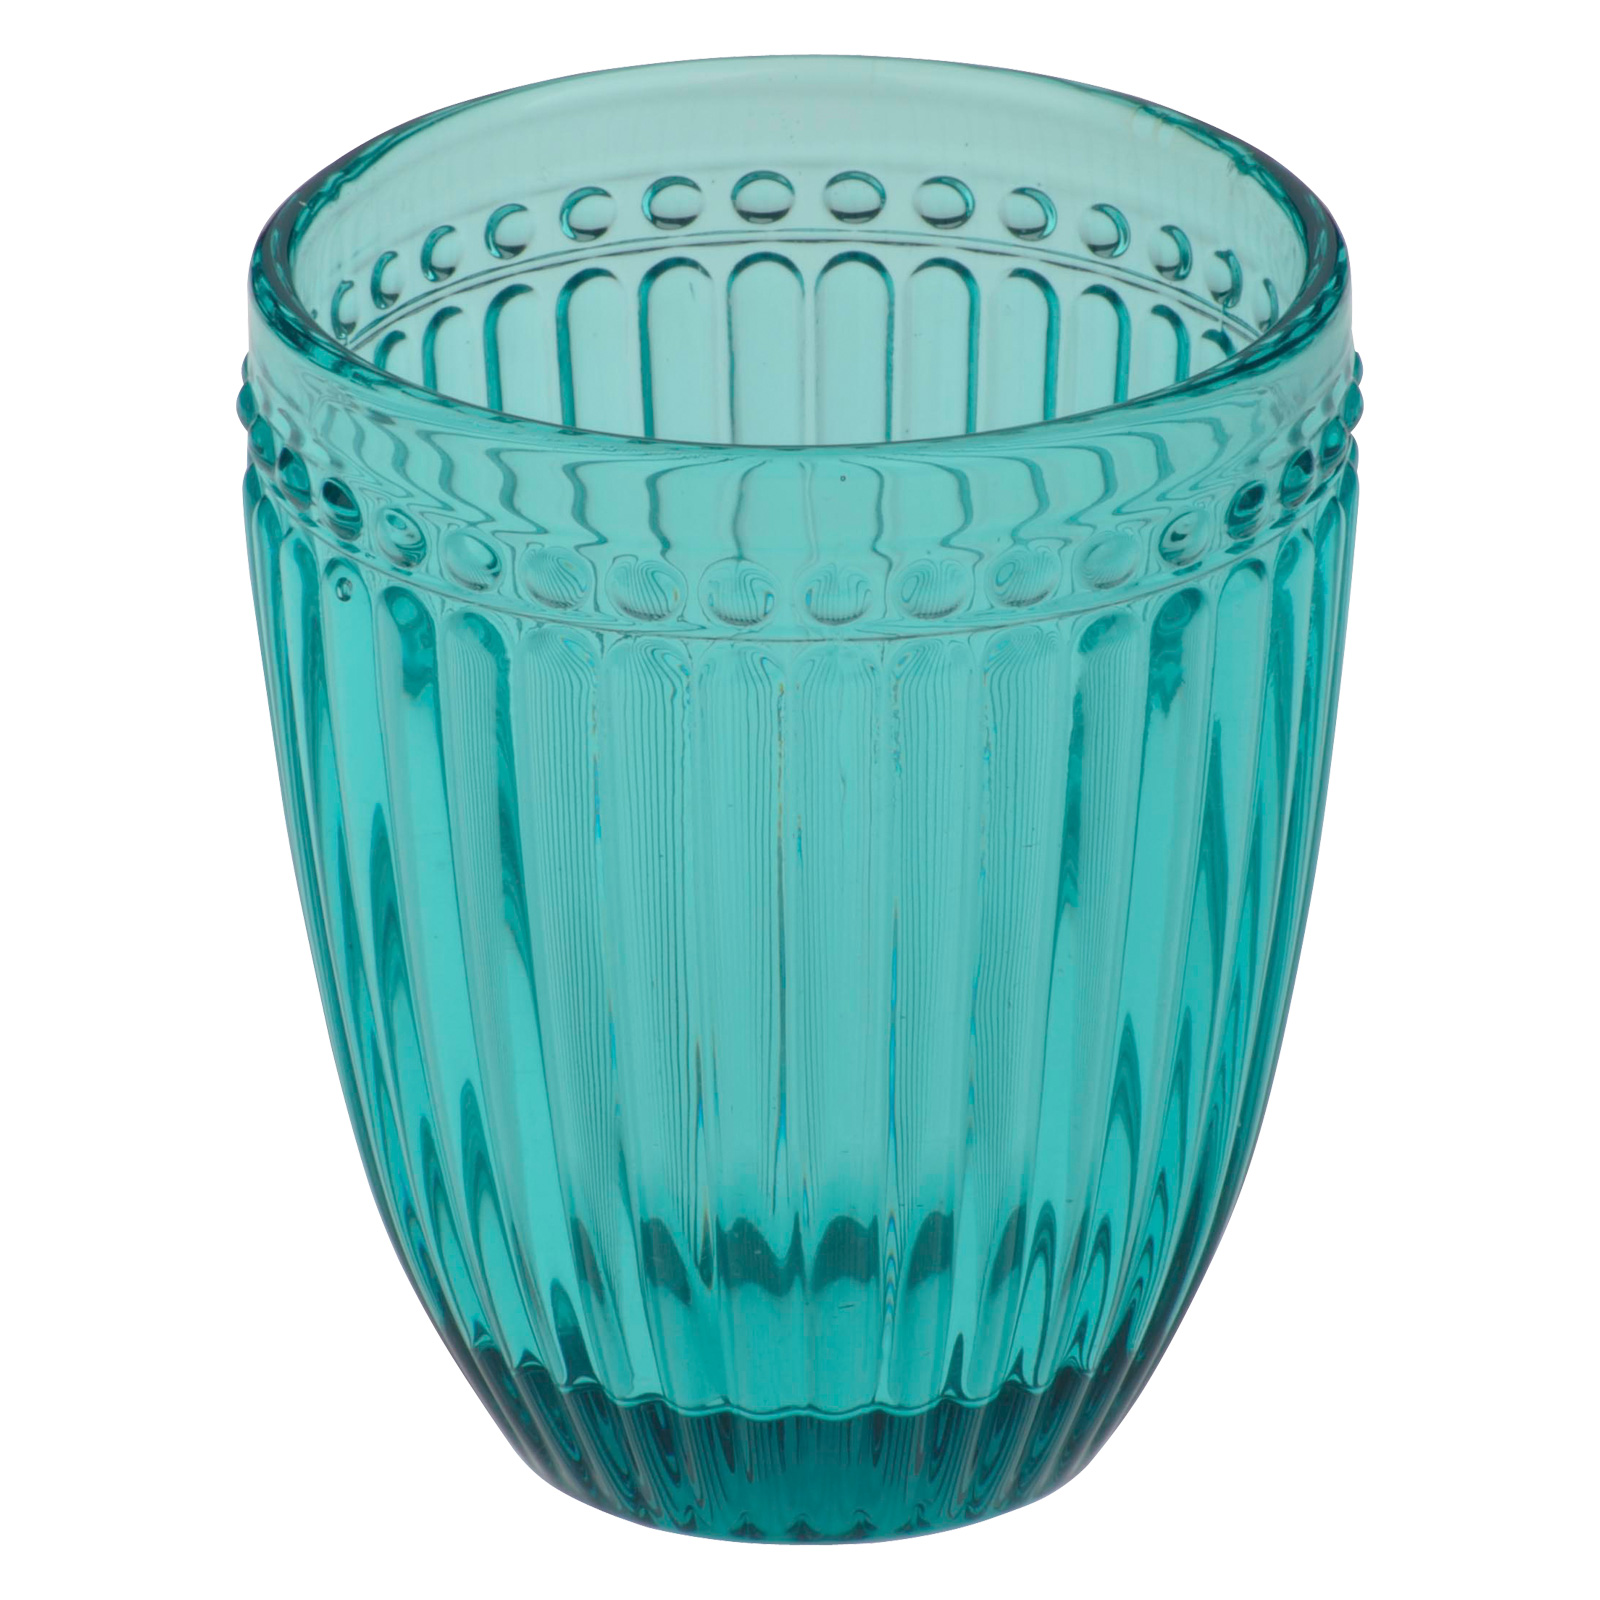 Set of 6 Loire DOF Tumblers Aqua Blue by Anton Studio Designs